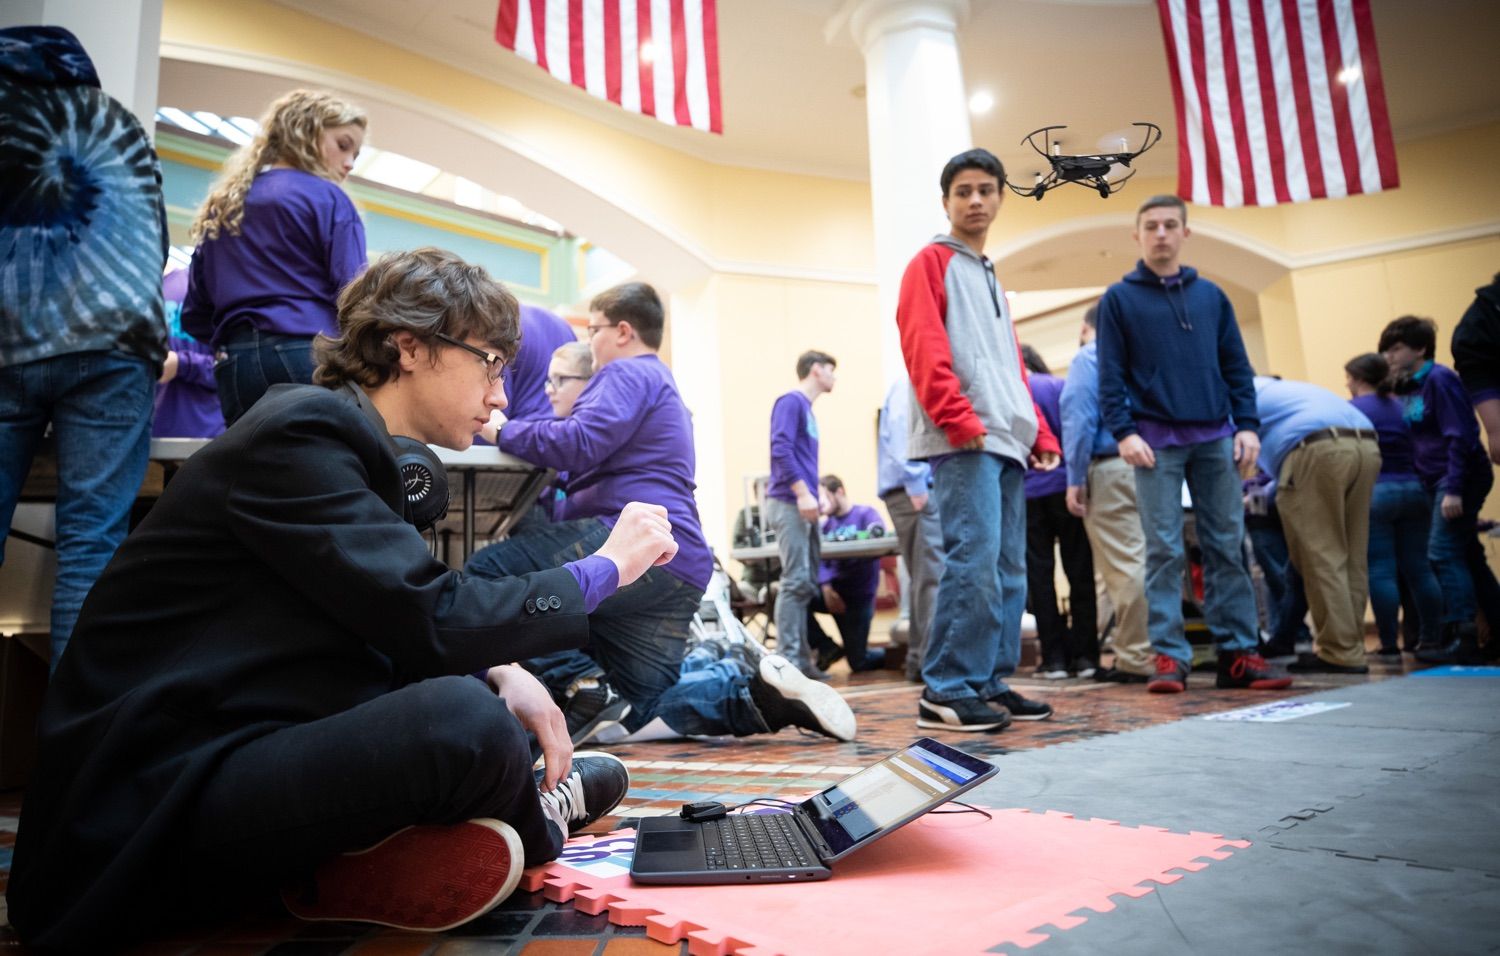 """<a href=""""https://filesource.wostreaming.net/commonwealthofpa/photo/17587_gov_pasmart_rural_robotics_dz_021.jpg"""" target=""""_blank"""">⇣Download Photo<br></a>Students fly a drone during the robotics demonstration.  Celebrating the success of the PAsmart workforce development program to create educational opportunities at schools across the commonwealth, Governor Tom Wolf welcomed more than 50 students from the Pennsylvania Rural Robotics Initiative to the Capitol today. The students from nine western Pennsylvania school districts showcased their skills in coding, robotics and drone technology. The Wolf administration awarded the initiative a $299,000 PAsmart Advancing Grant earlier this year. Harrisburg, PA  Tuesday, November 12, 2019"""